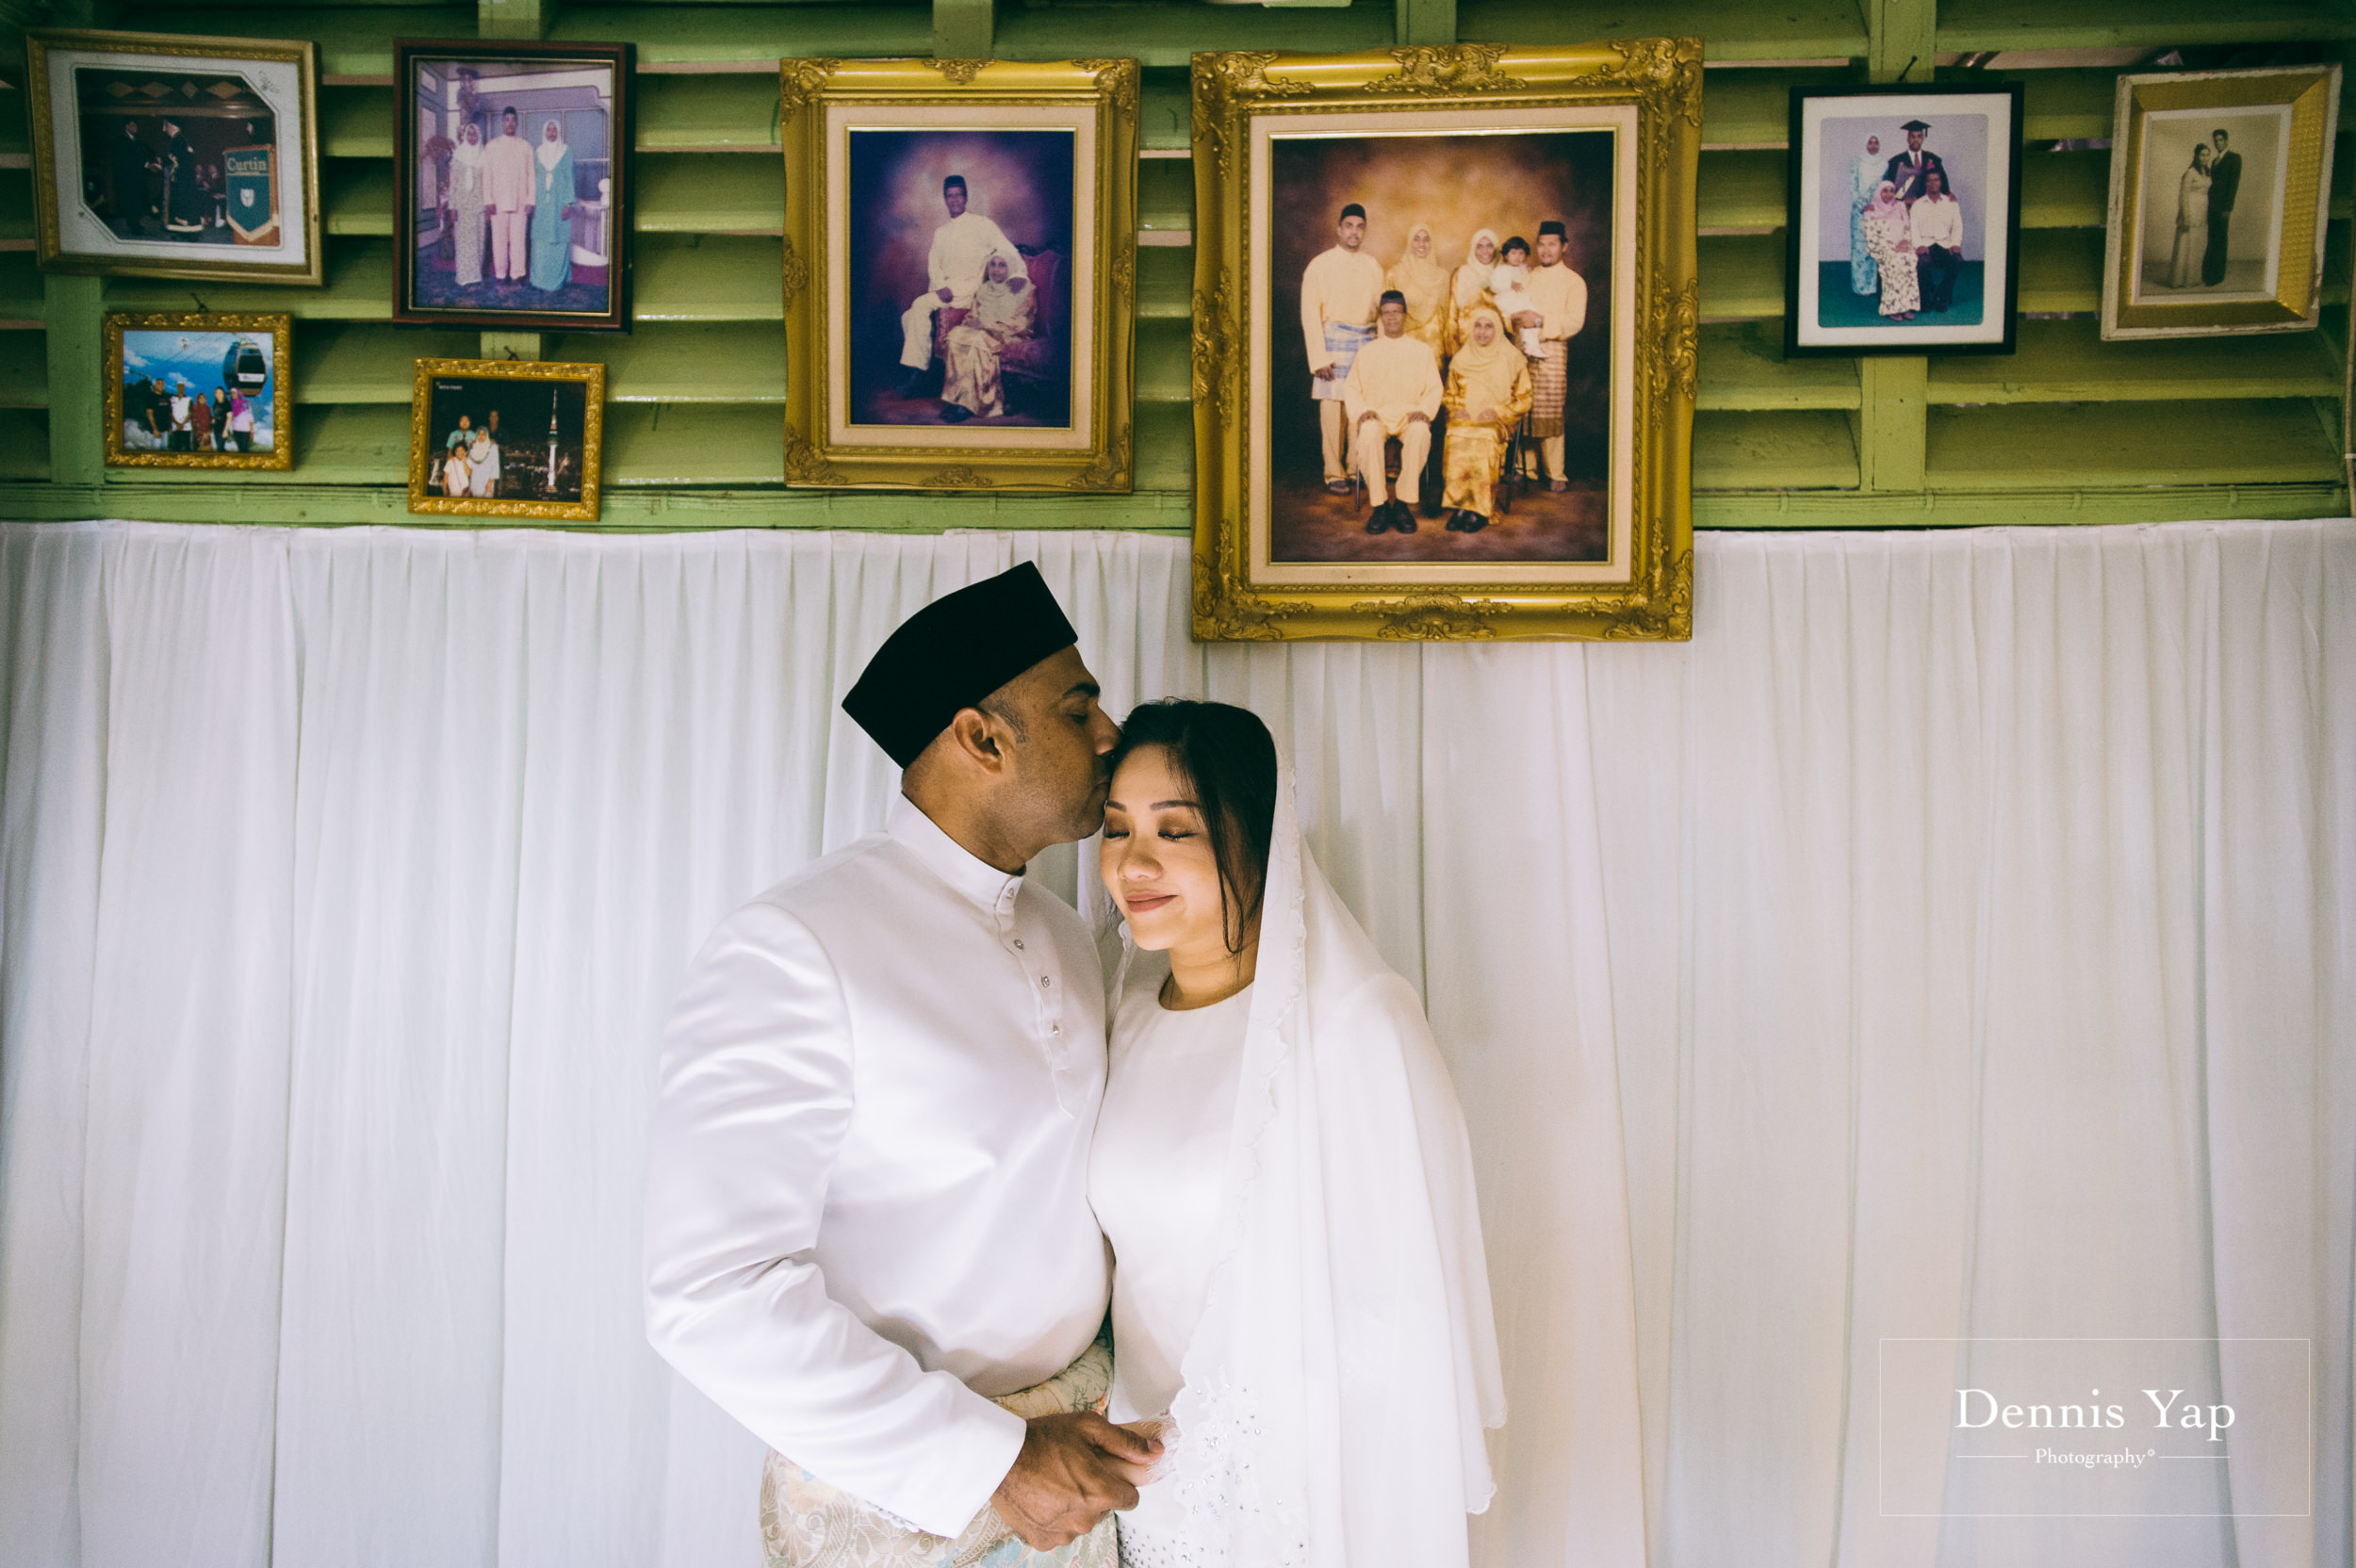 azmi nicole ahkad nikah malay traditional blessing ceremony malaysia wedding photographer dennis yap-5.jpg